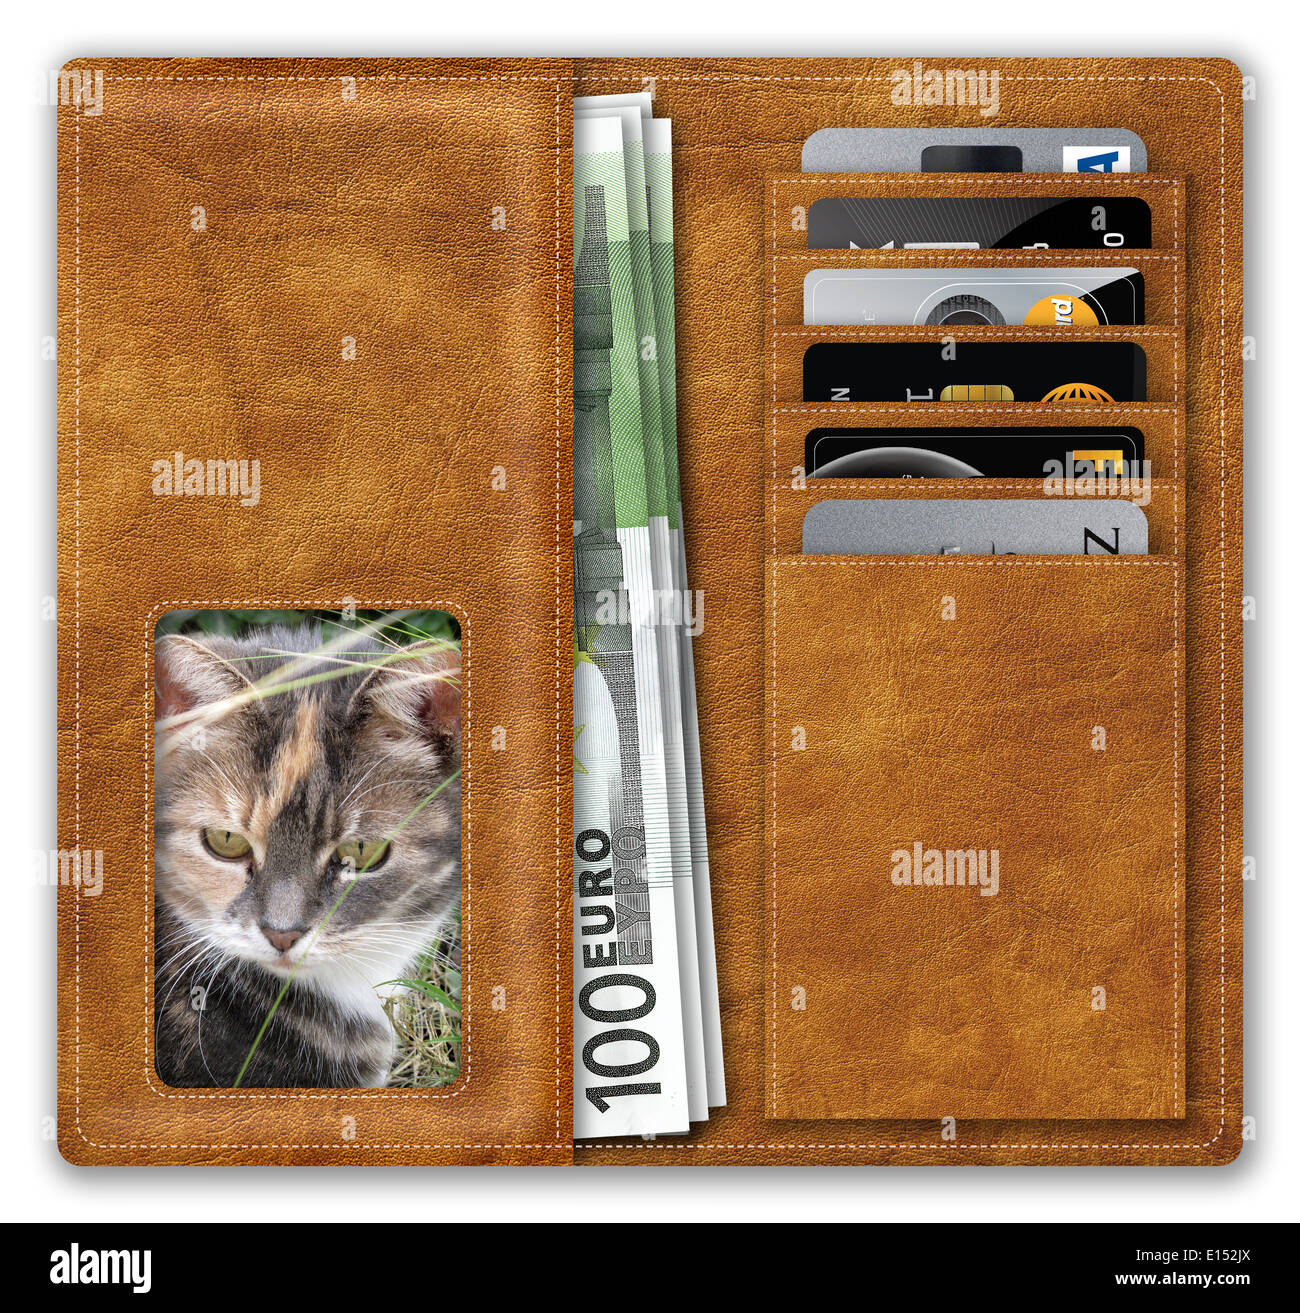 Wallet containing Euros and credit cards, with a female pet owner and cat, illustrating the cost of pet ownership. - Stock Image